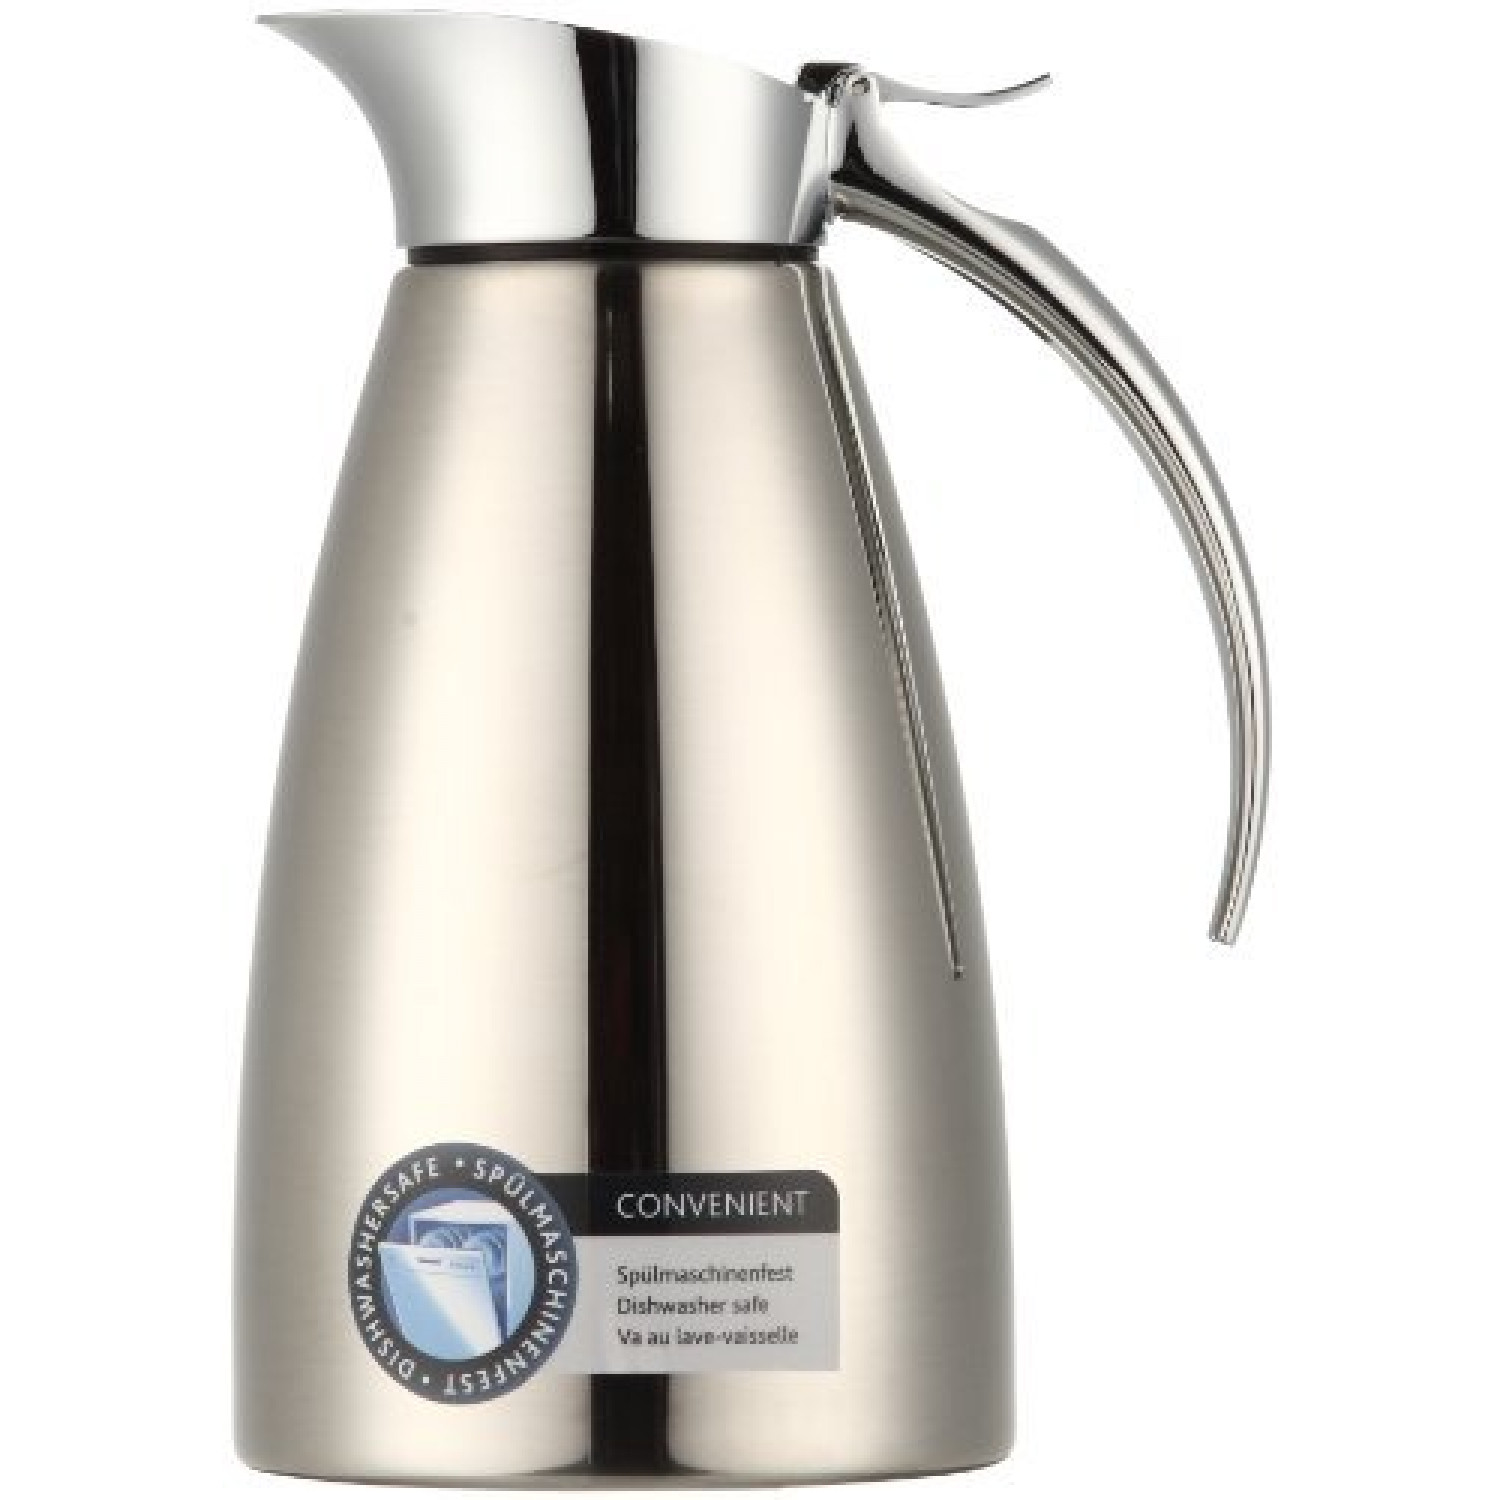 502488 Eleganza Pichet Isotherme Easy Open Inox 0.6 L